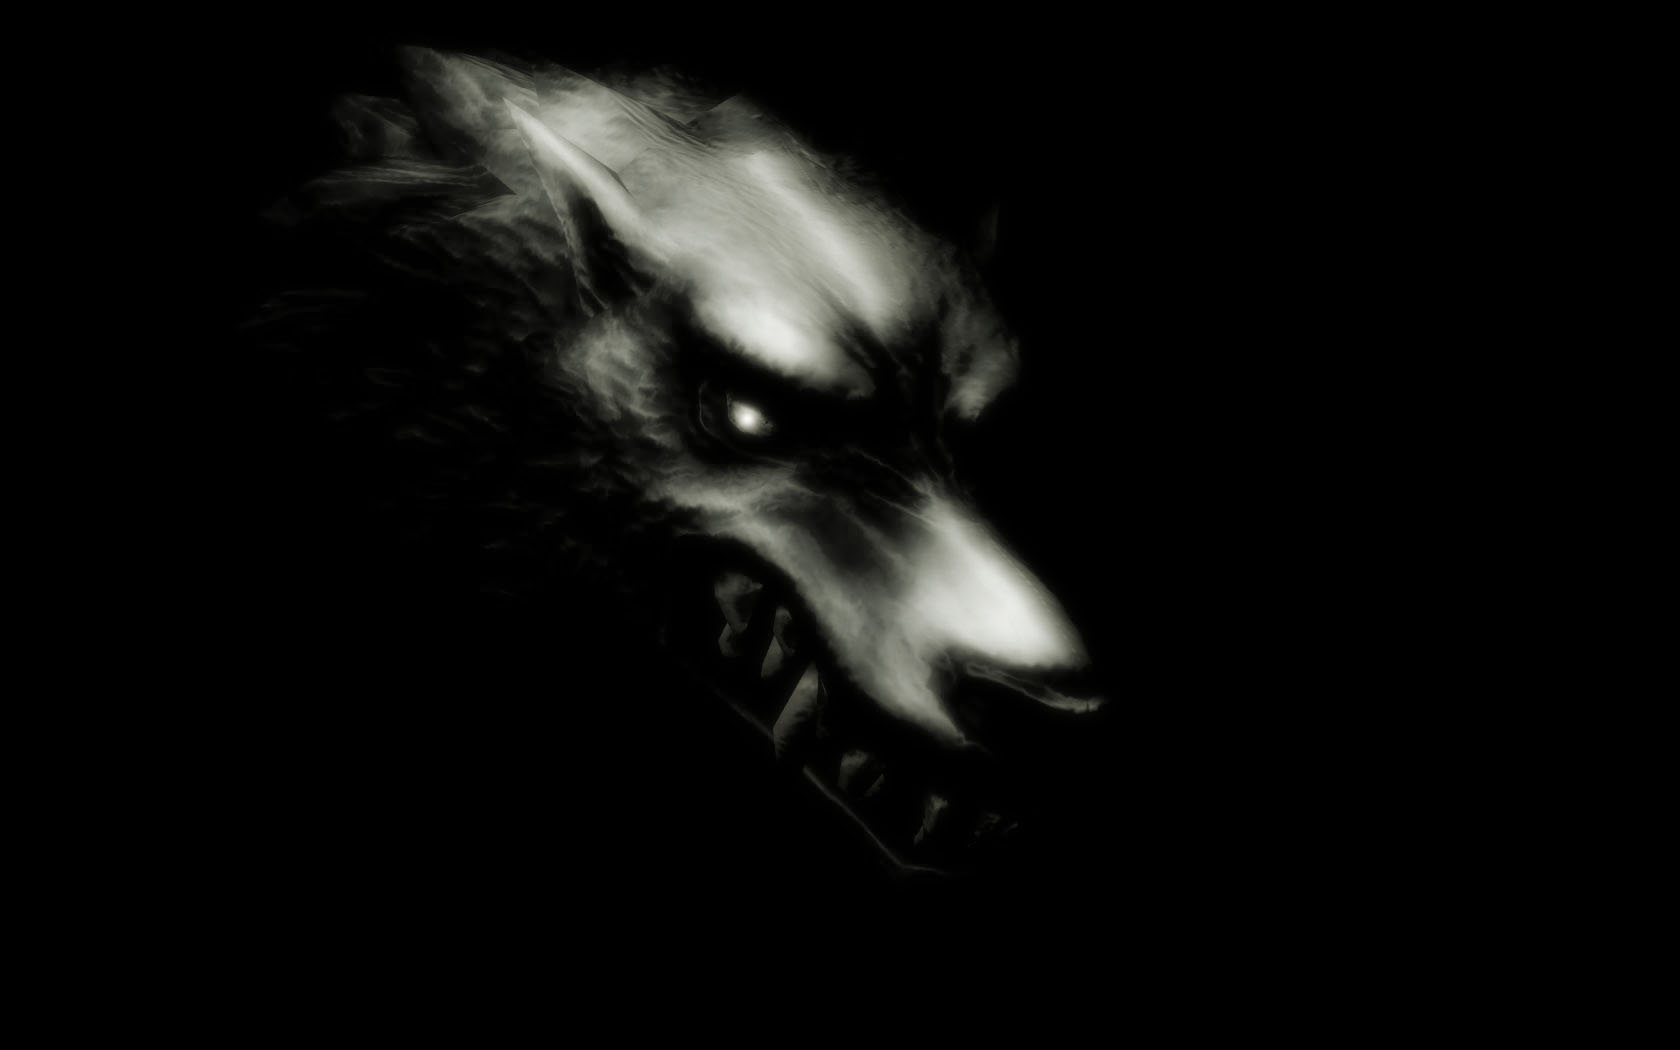 The big bad wolf a poem by januarydreamer lurking within the shadows